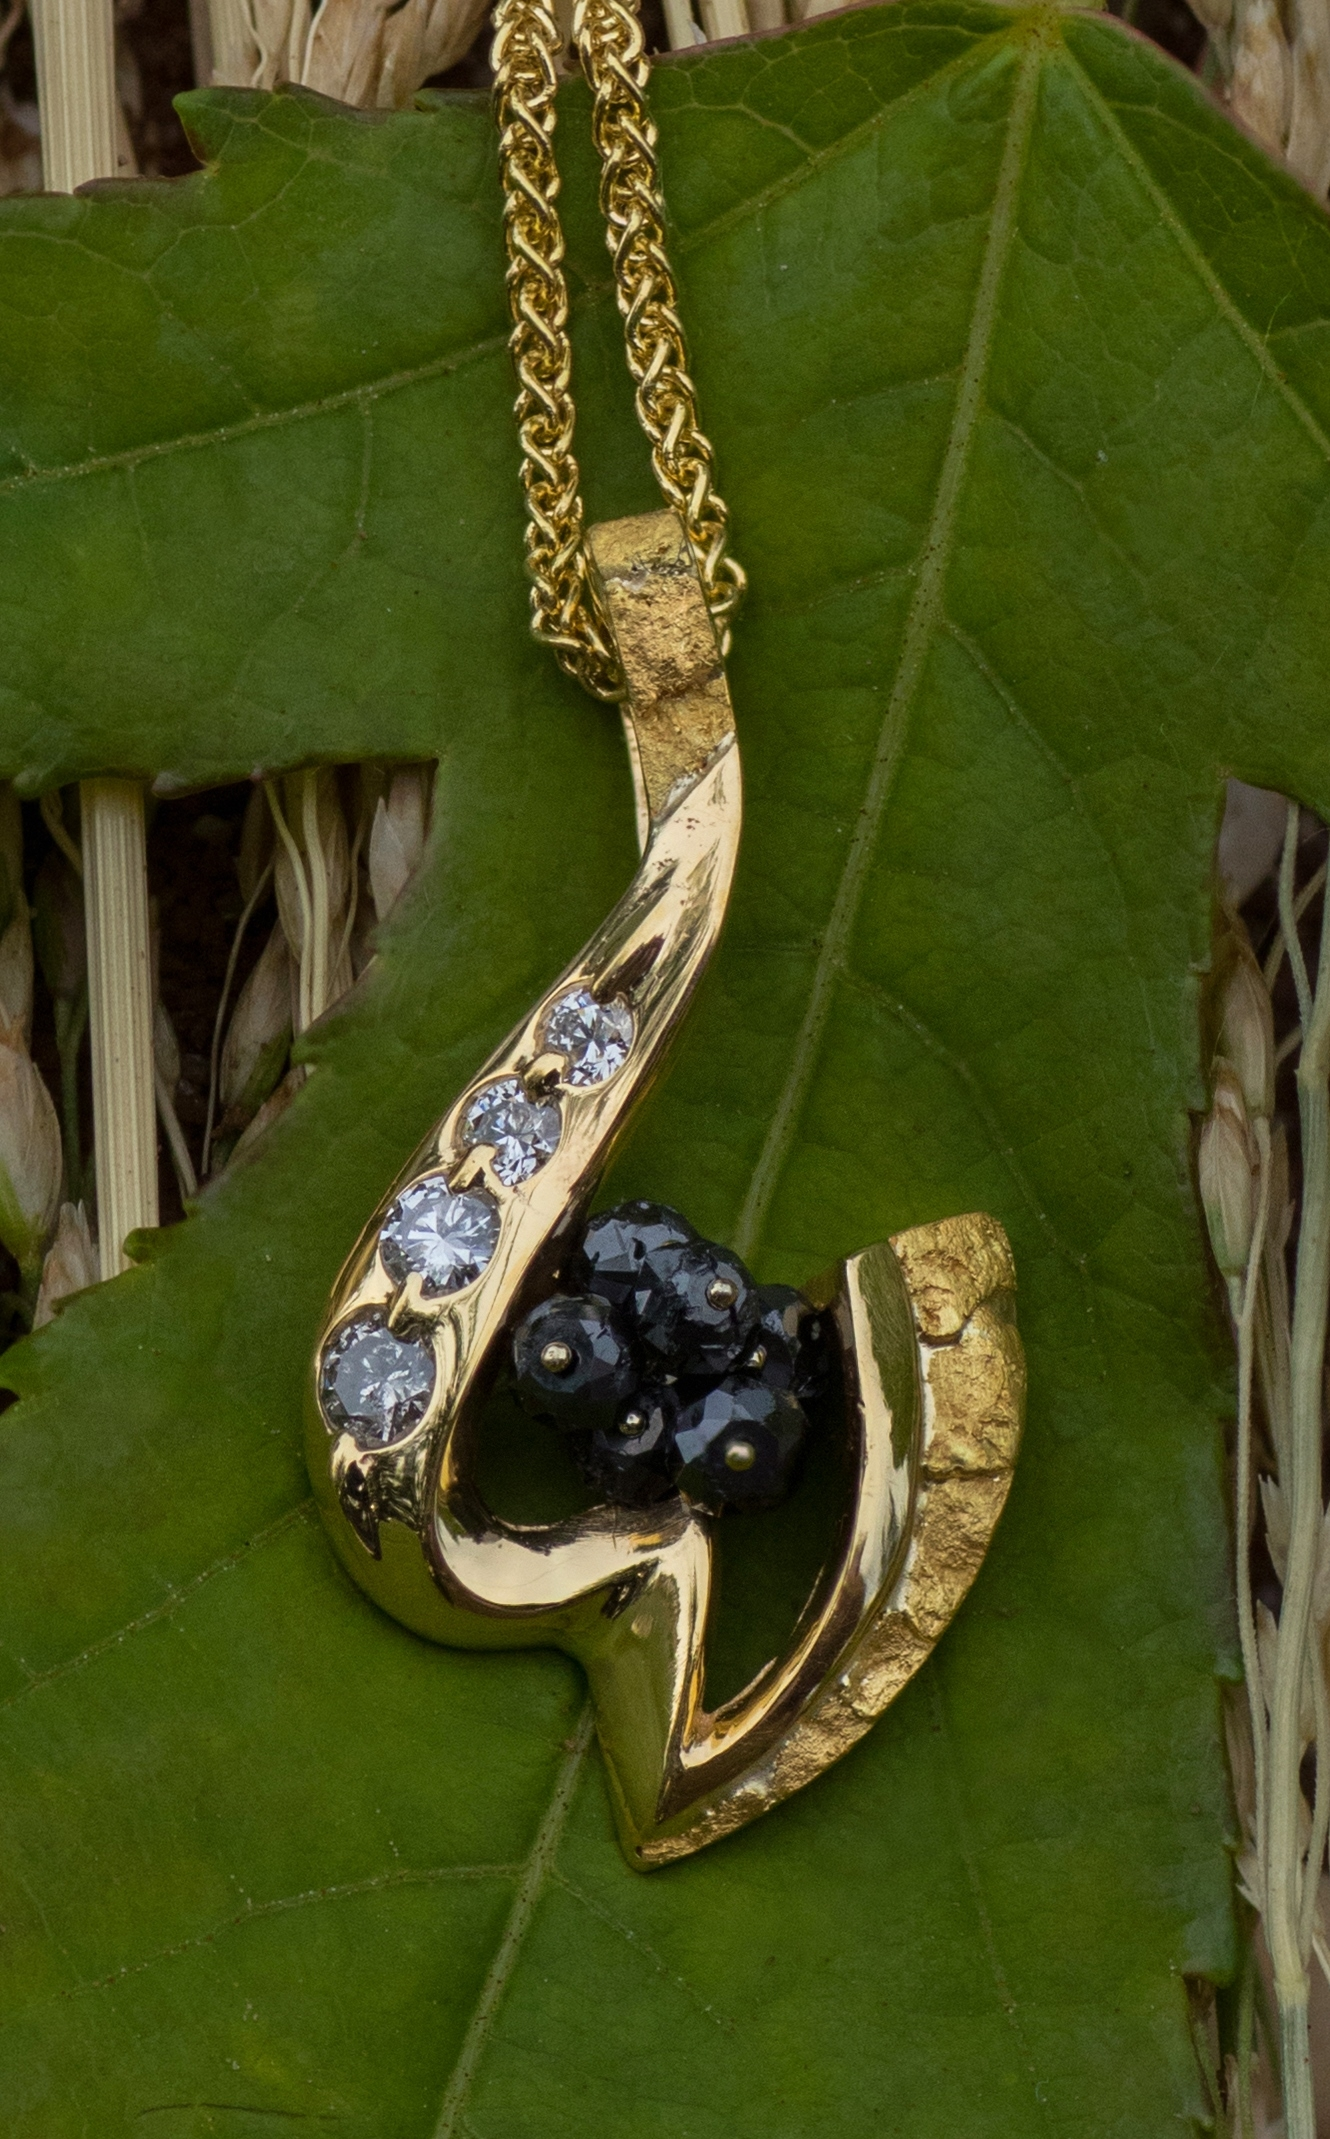 Black and White Diamond Pendant in 14kt yellow gold with natural Alaskan gold nuggets